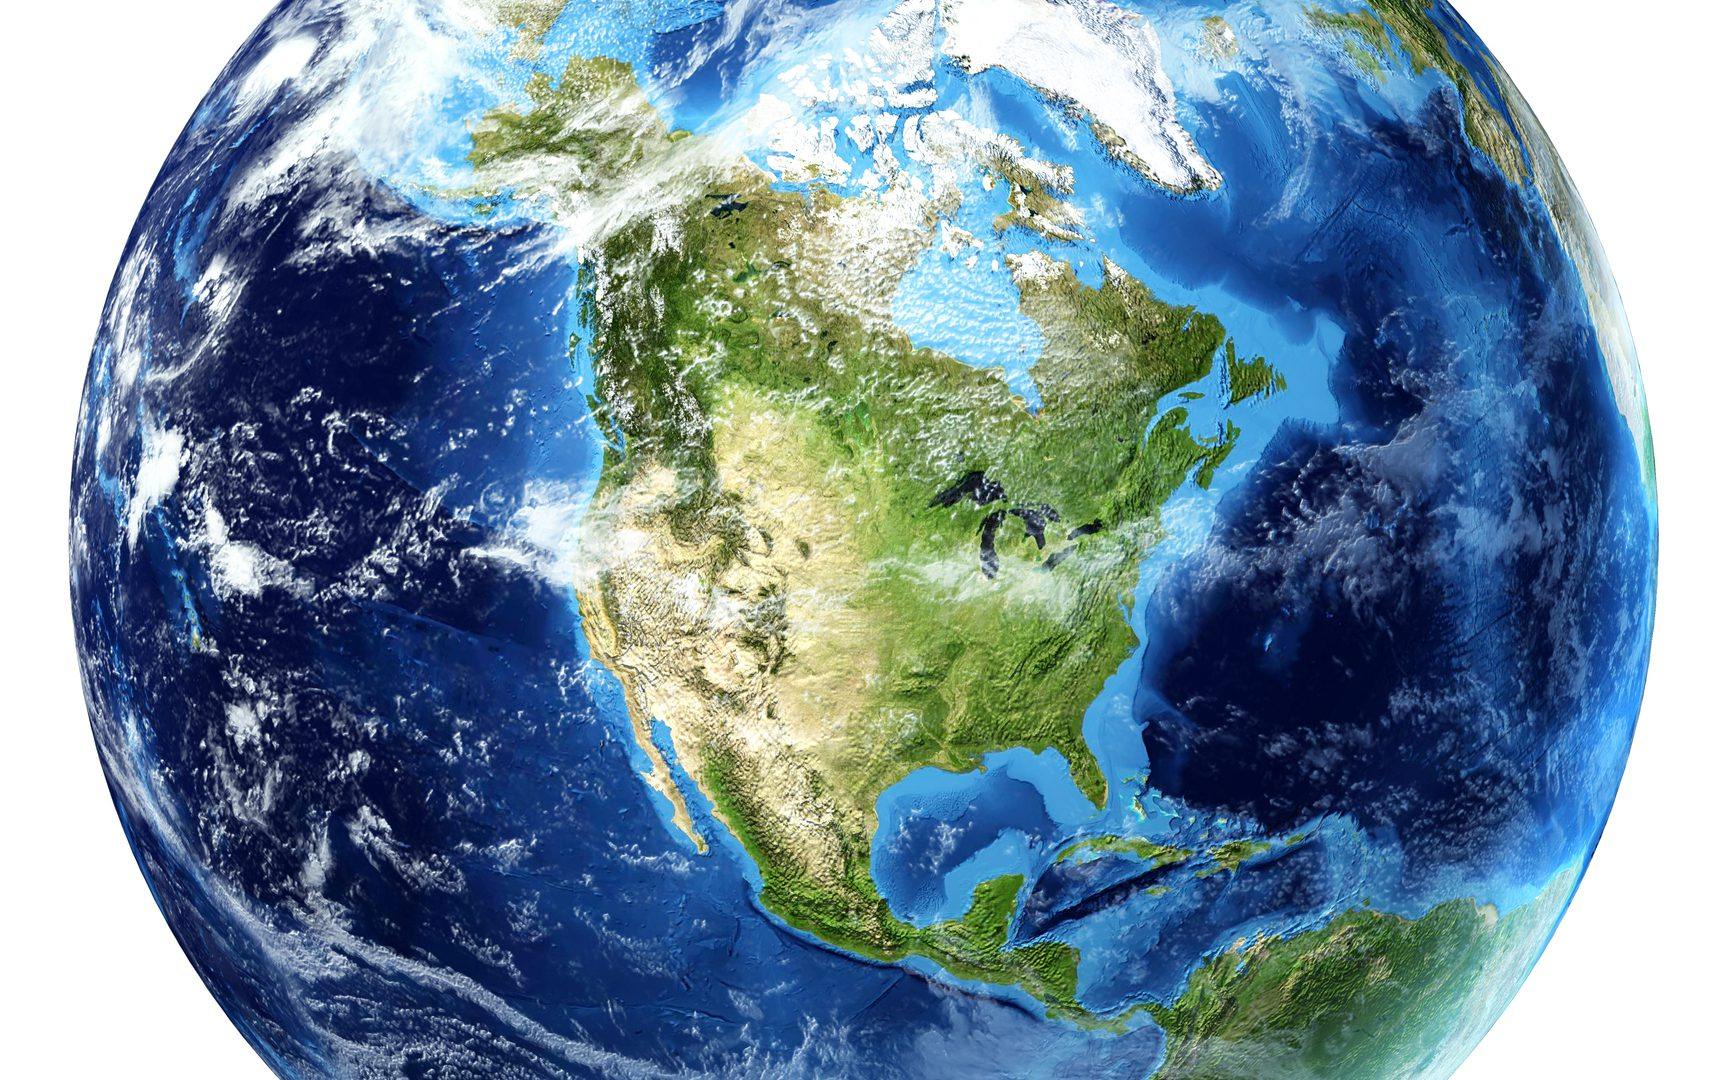 Planet earth with some clouds. North America view.